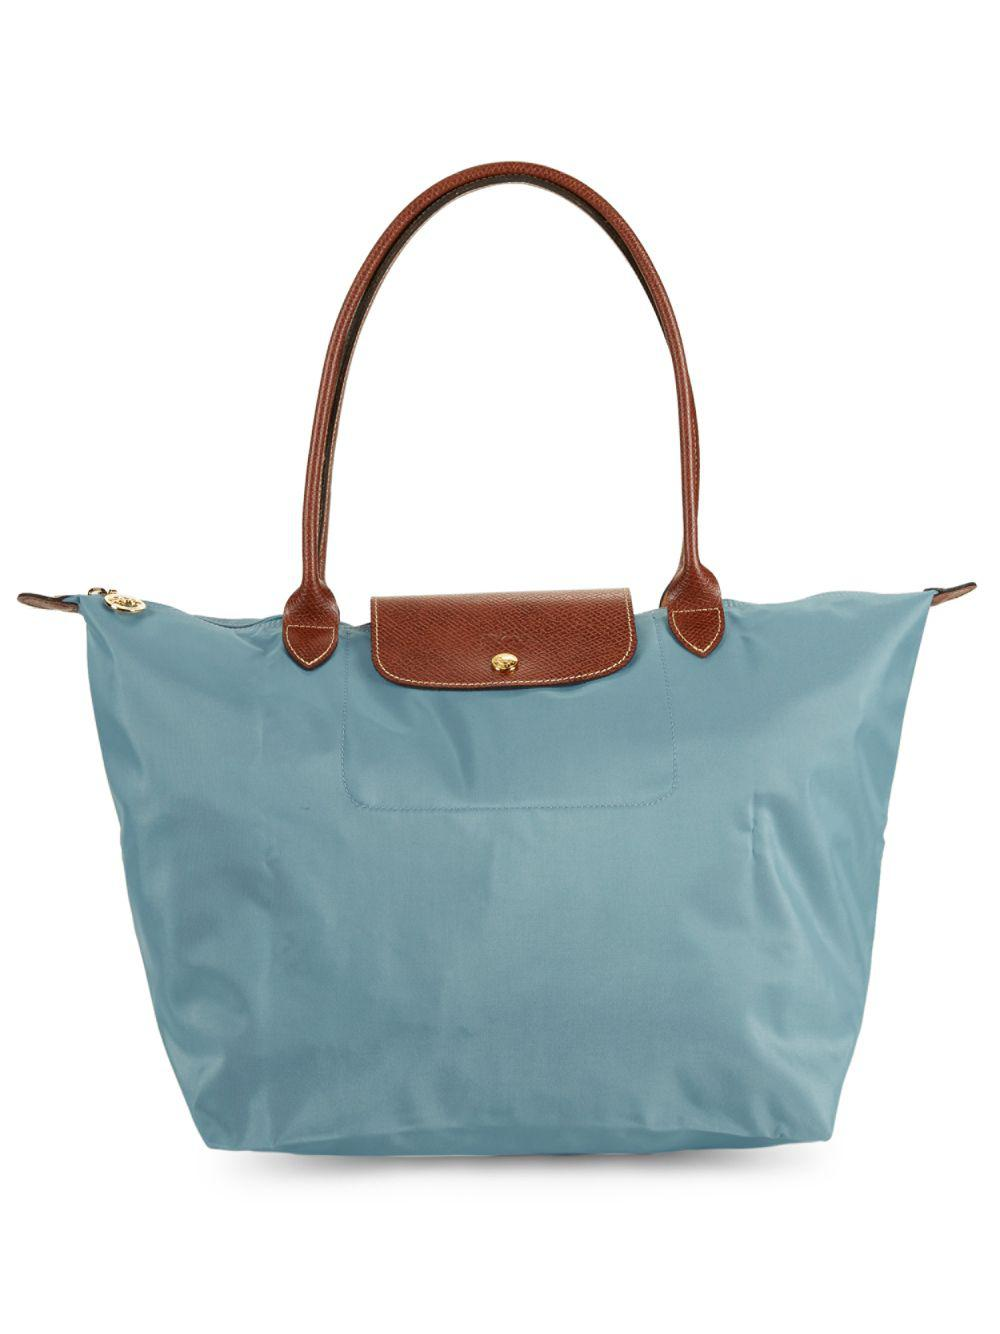 Lyst - Longchamp Large Classic Le Pliage Tote Bag in Blue 12eccc17f2099